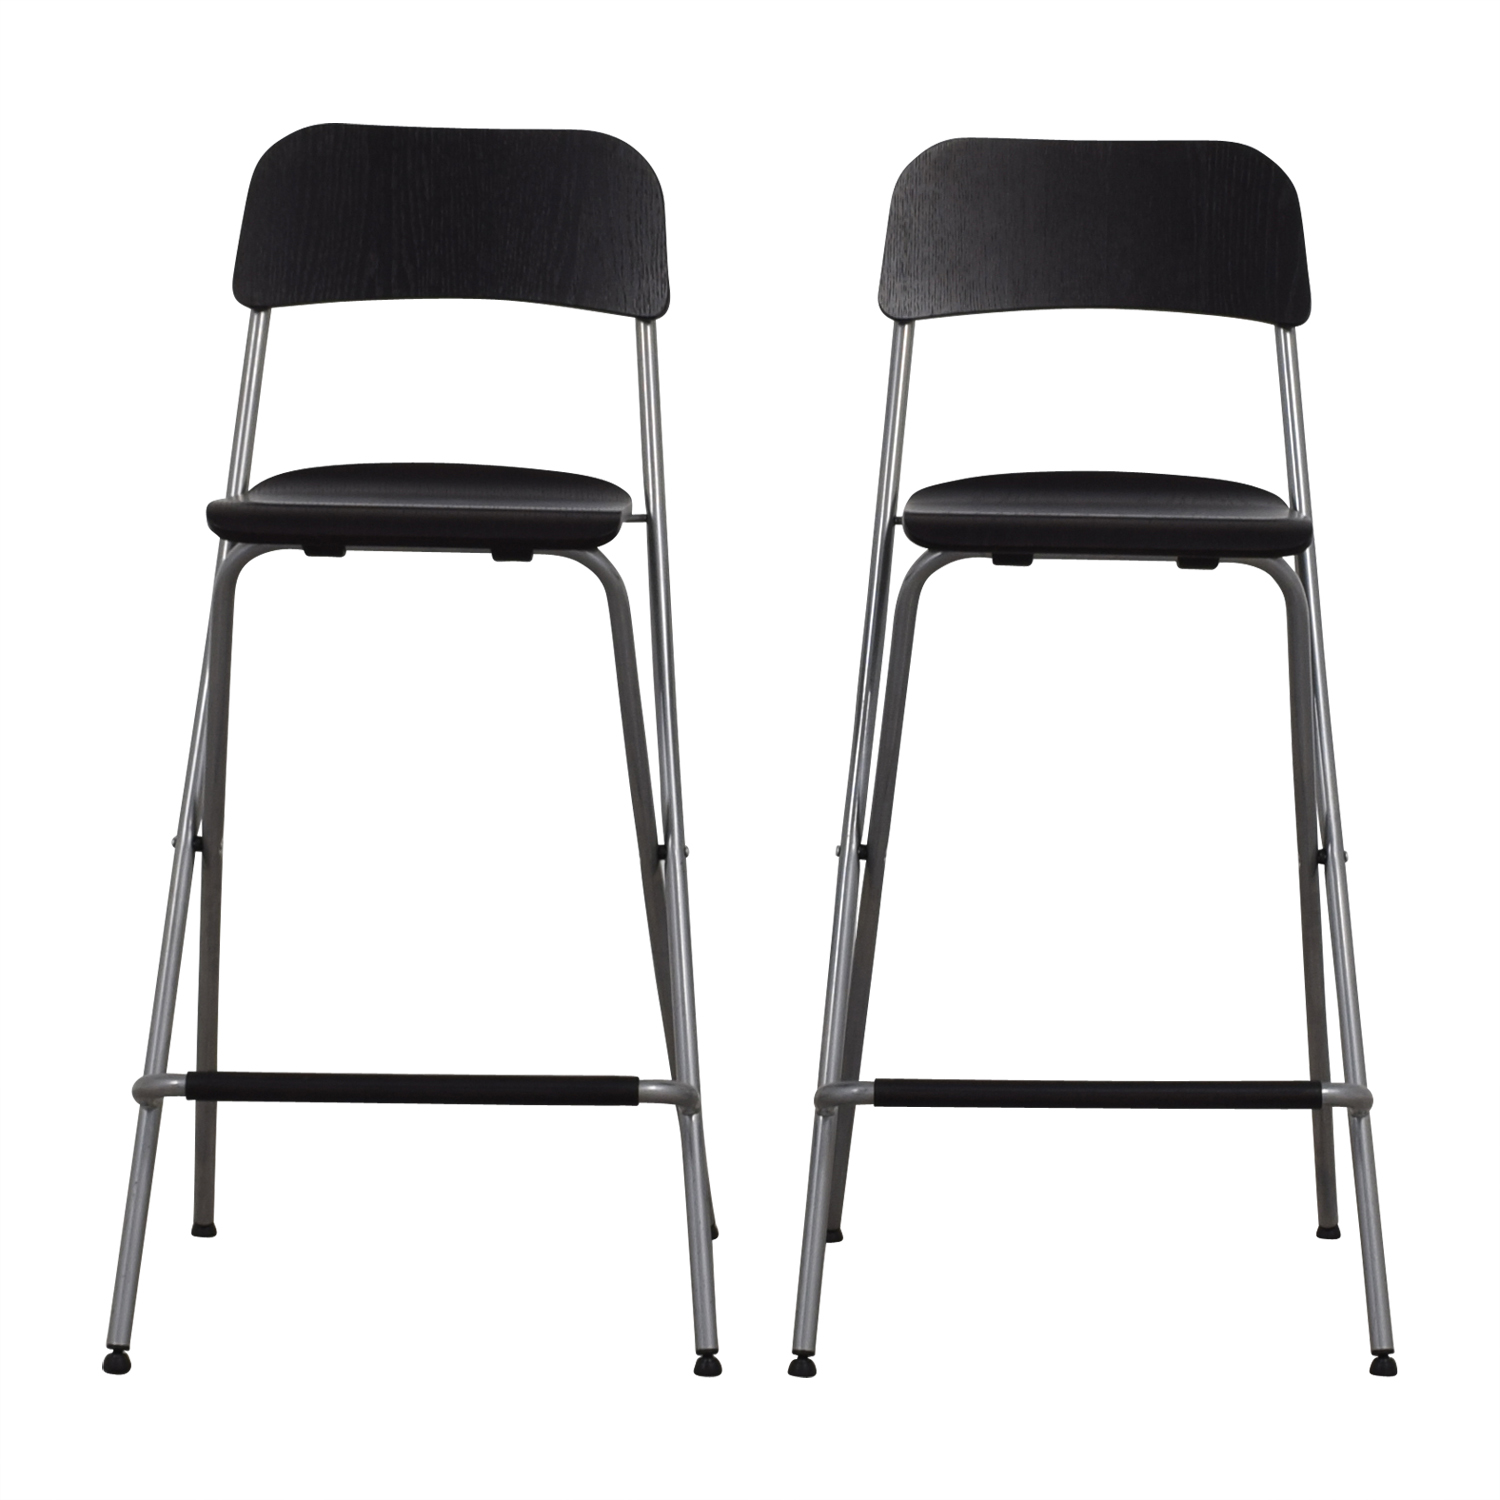 Inspirational ikea folding chairs for Folding bar stools ikea